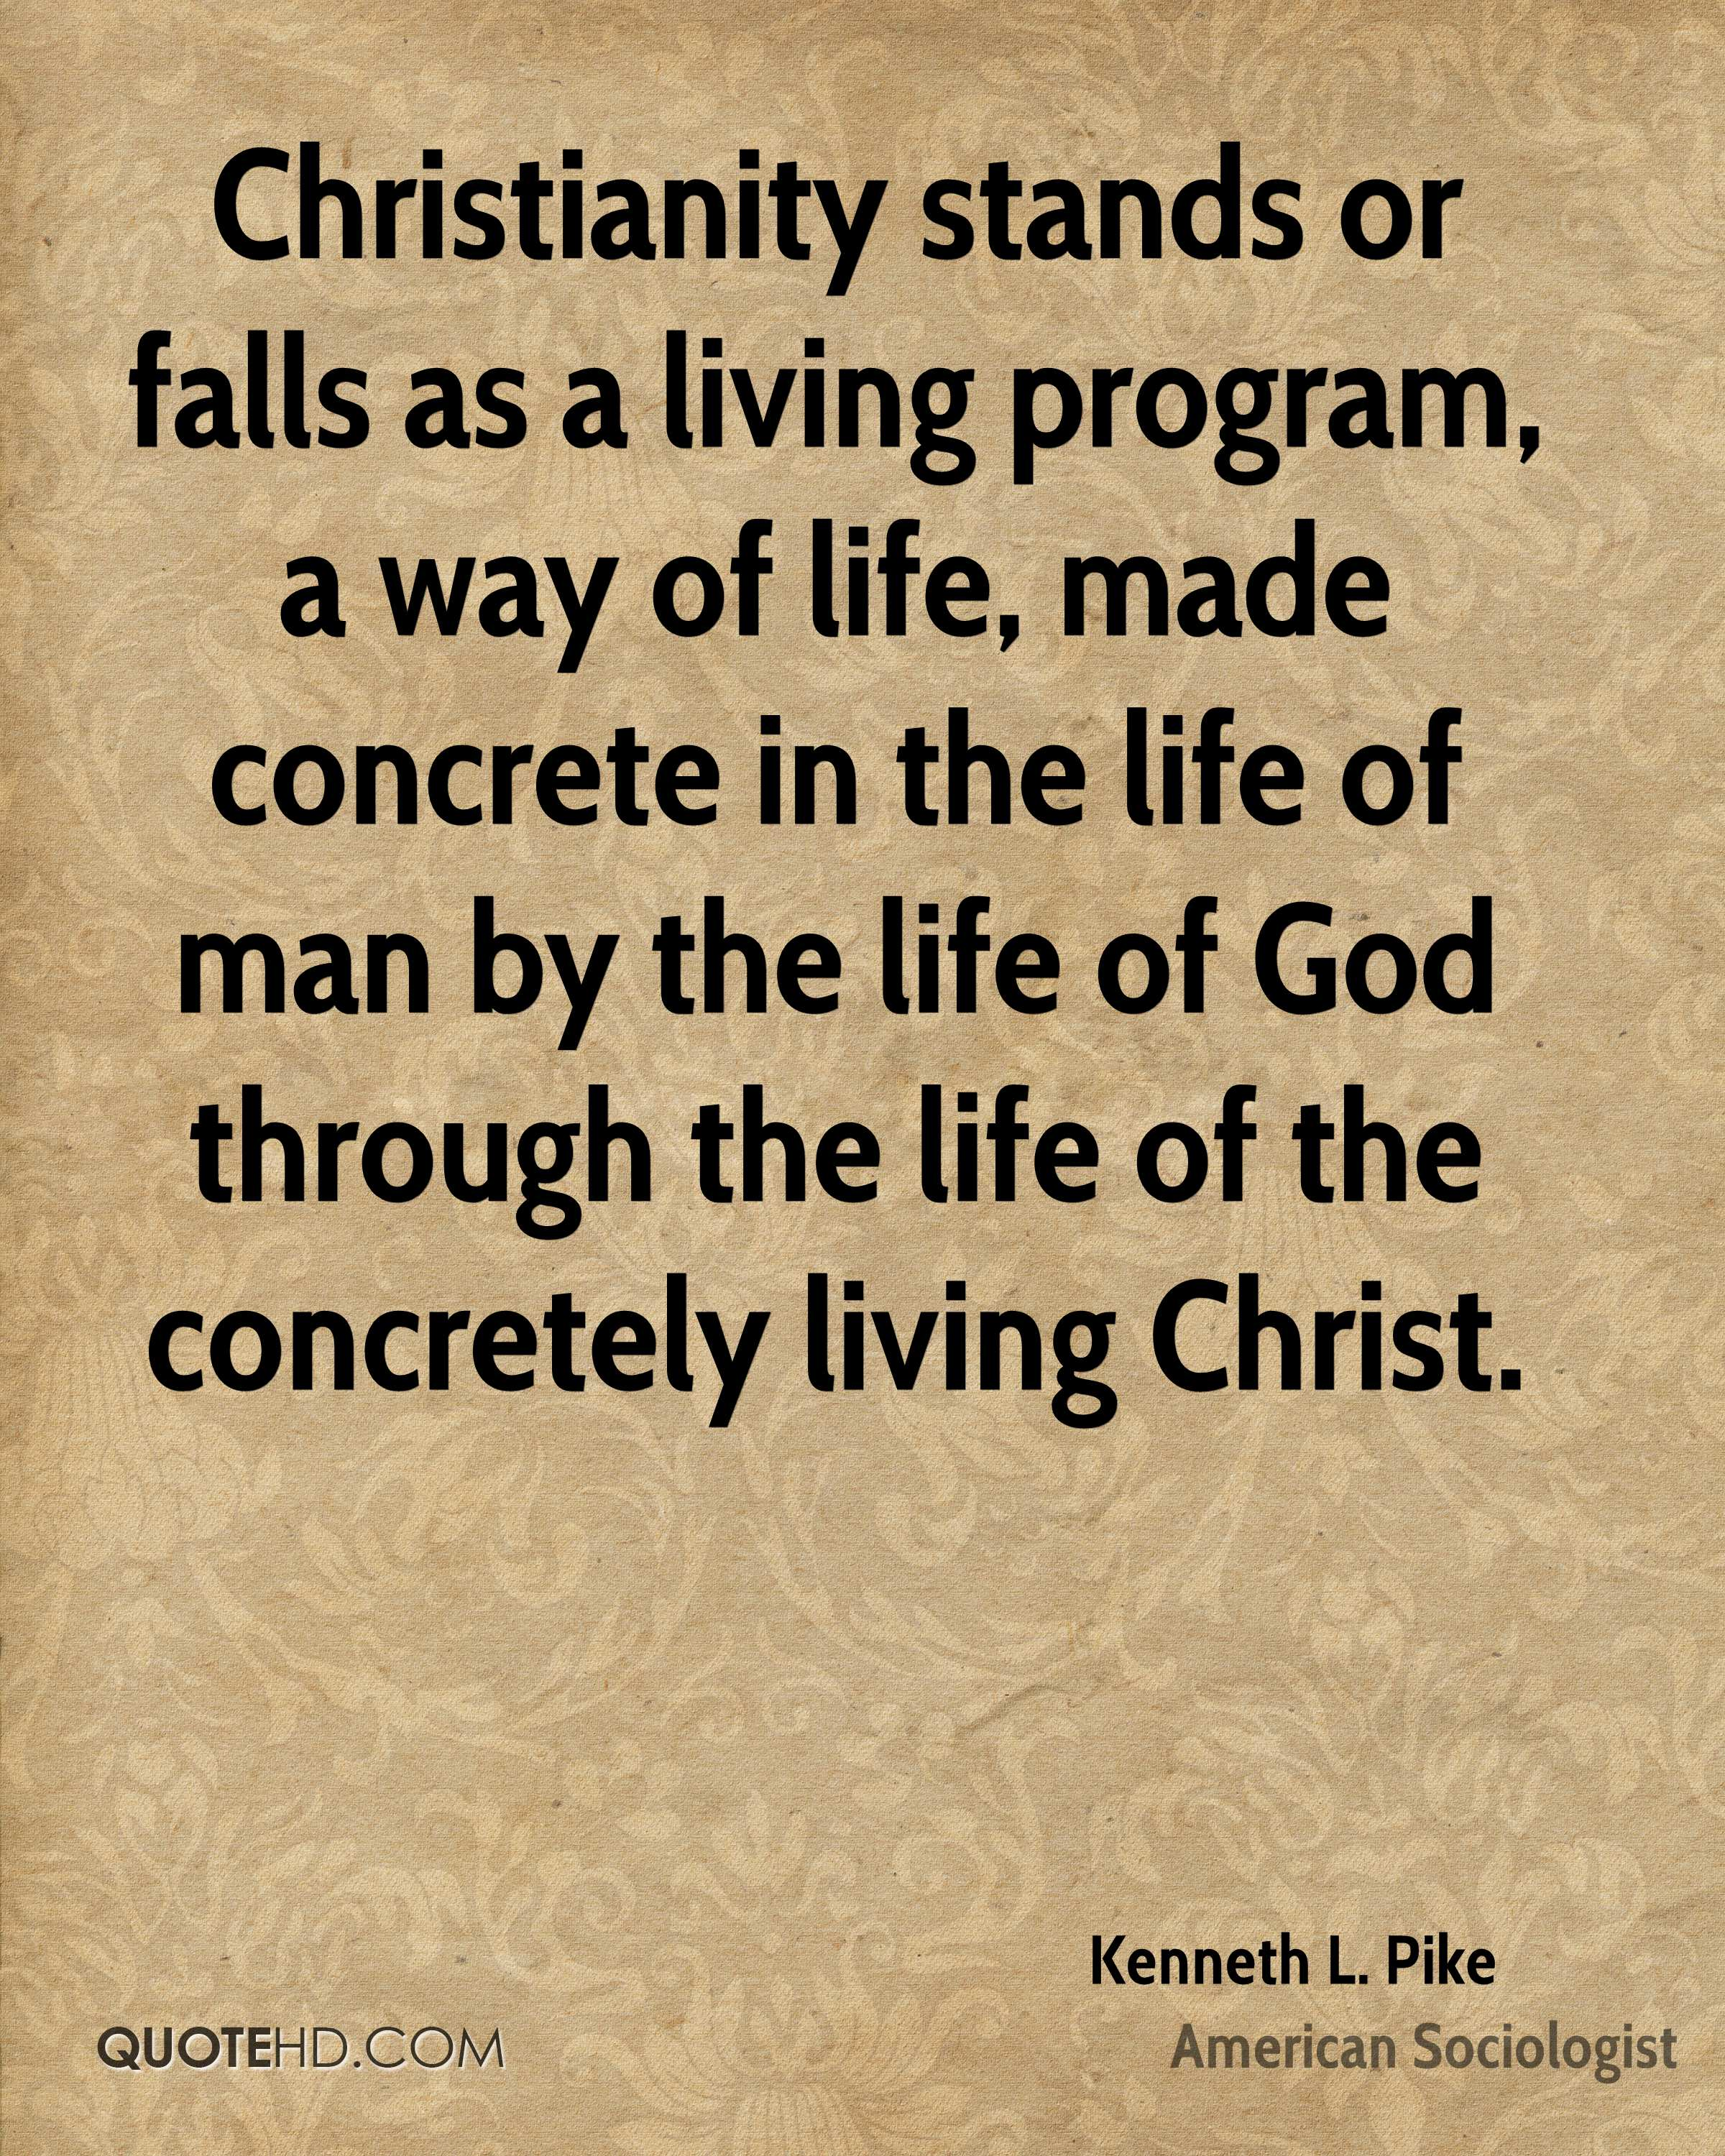 Christianity stands or falls as a living program, a way of life, made concrete in the life of man by the life of God through the life of the concretely living Christ.